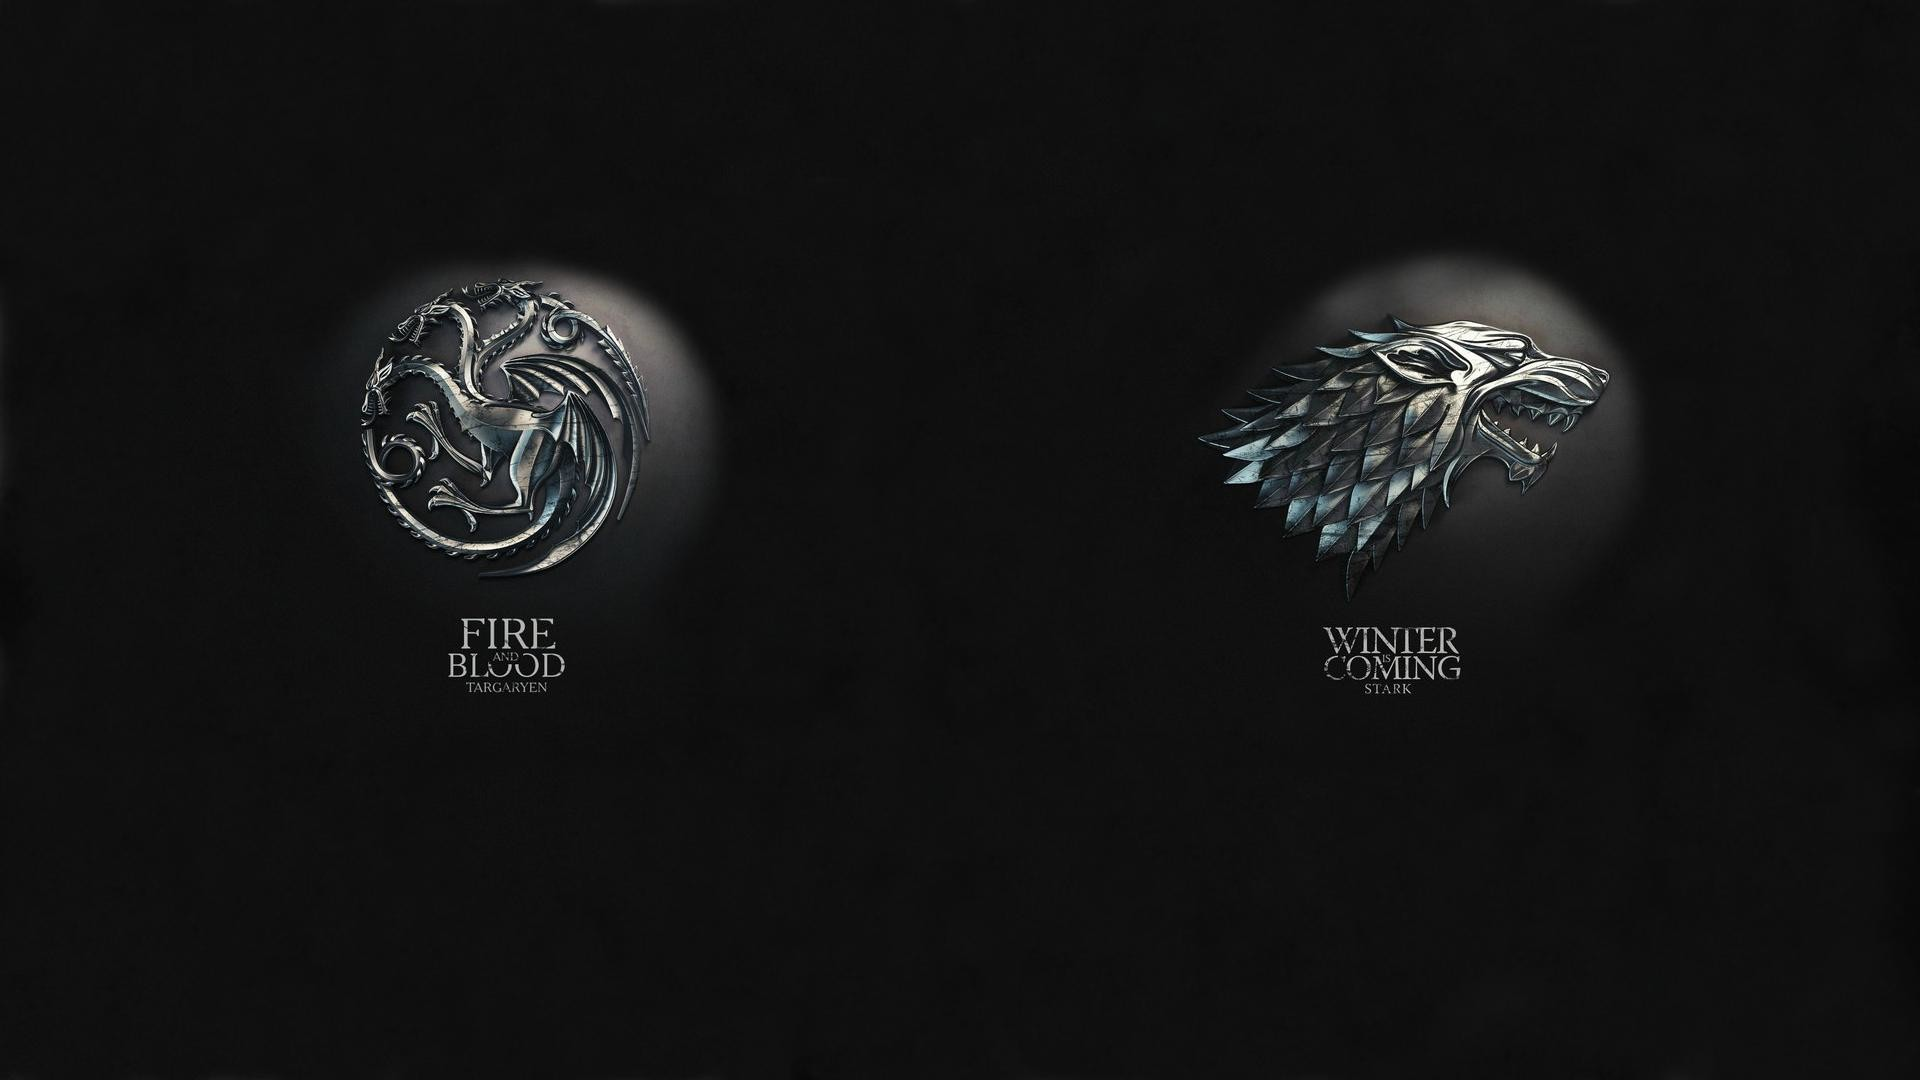 1920x1080 To anyone like me who loves both House Stark and House Targaryen equally,  here's both of them mixed into one wallpaper ...